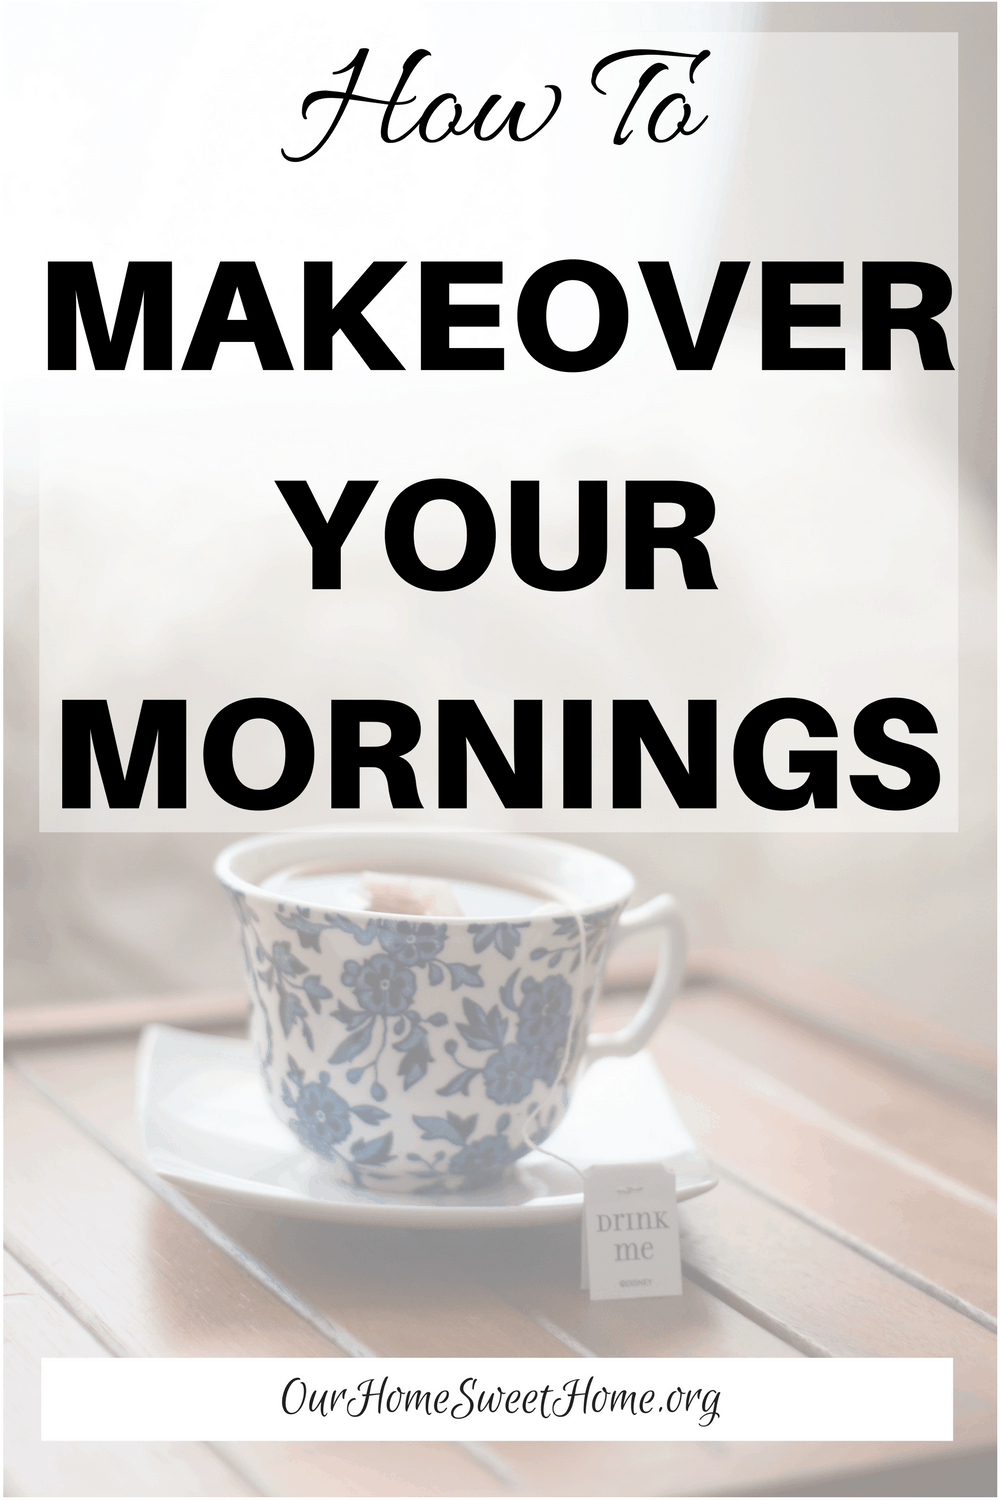 How To Makeover Your Mornings